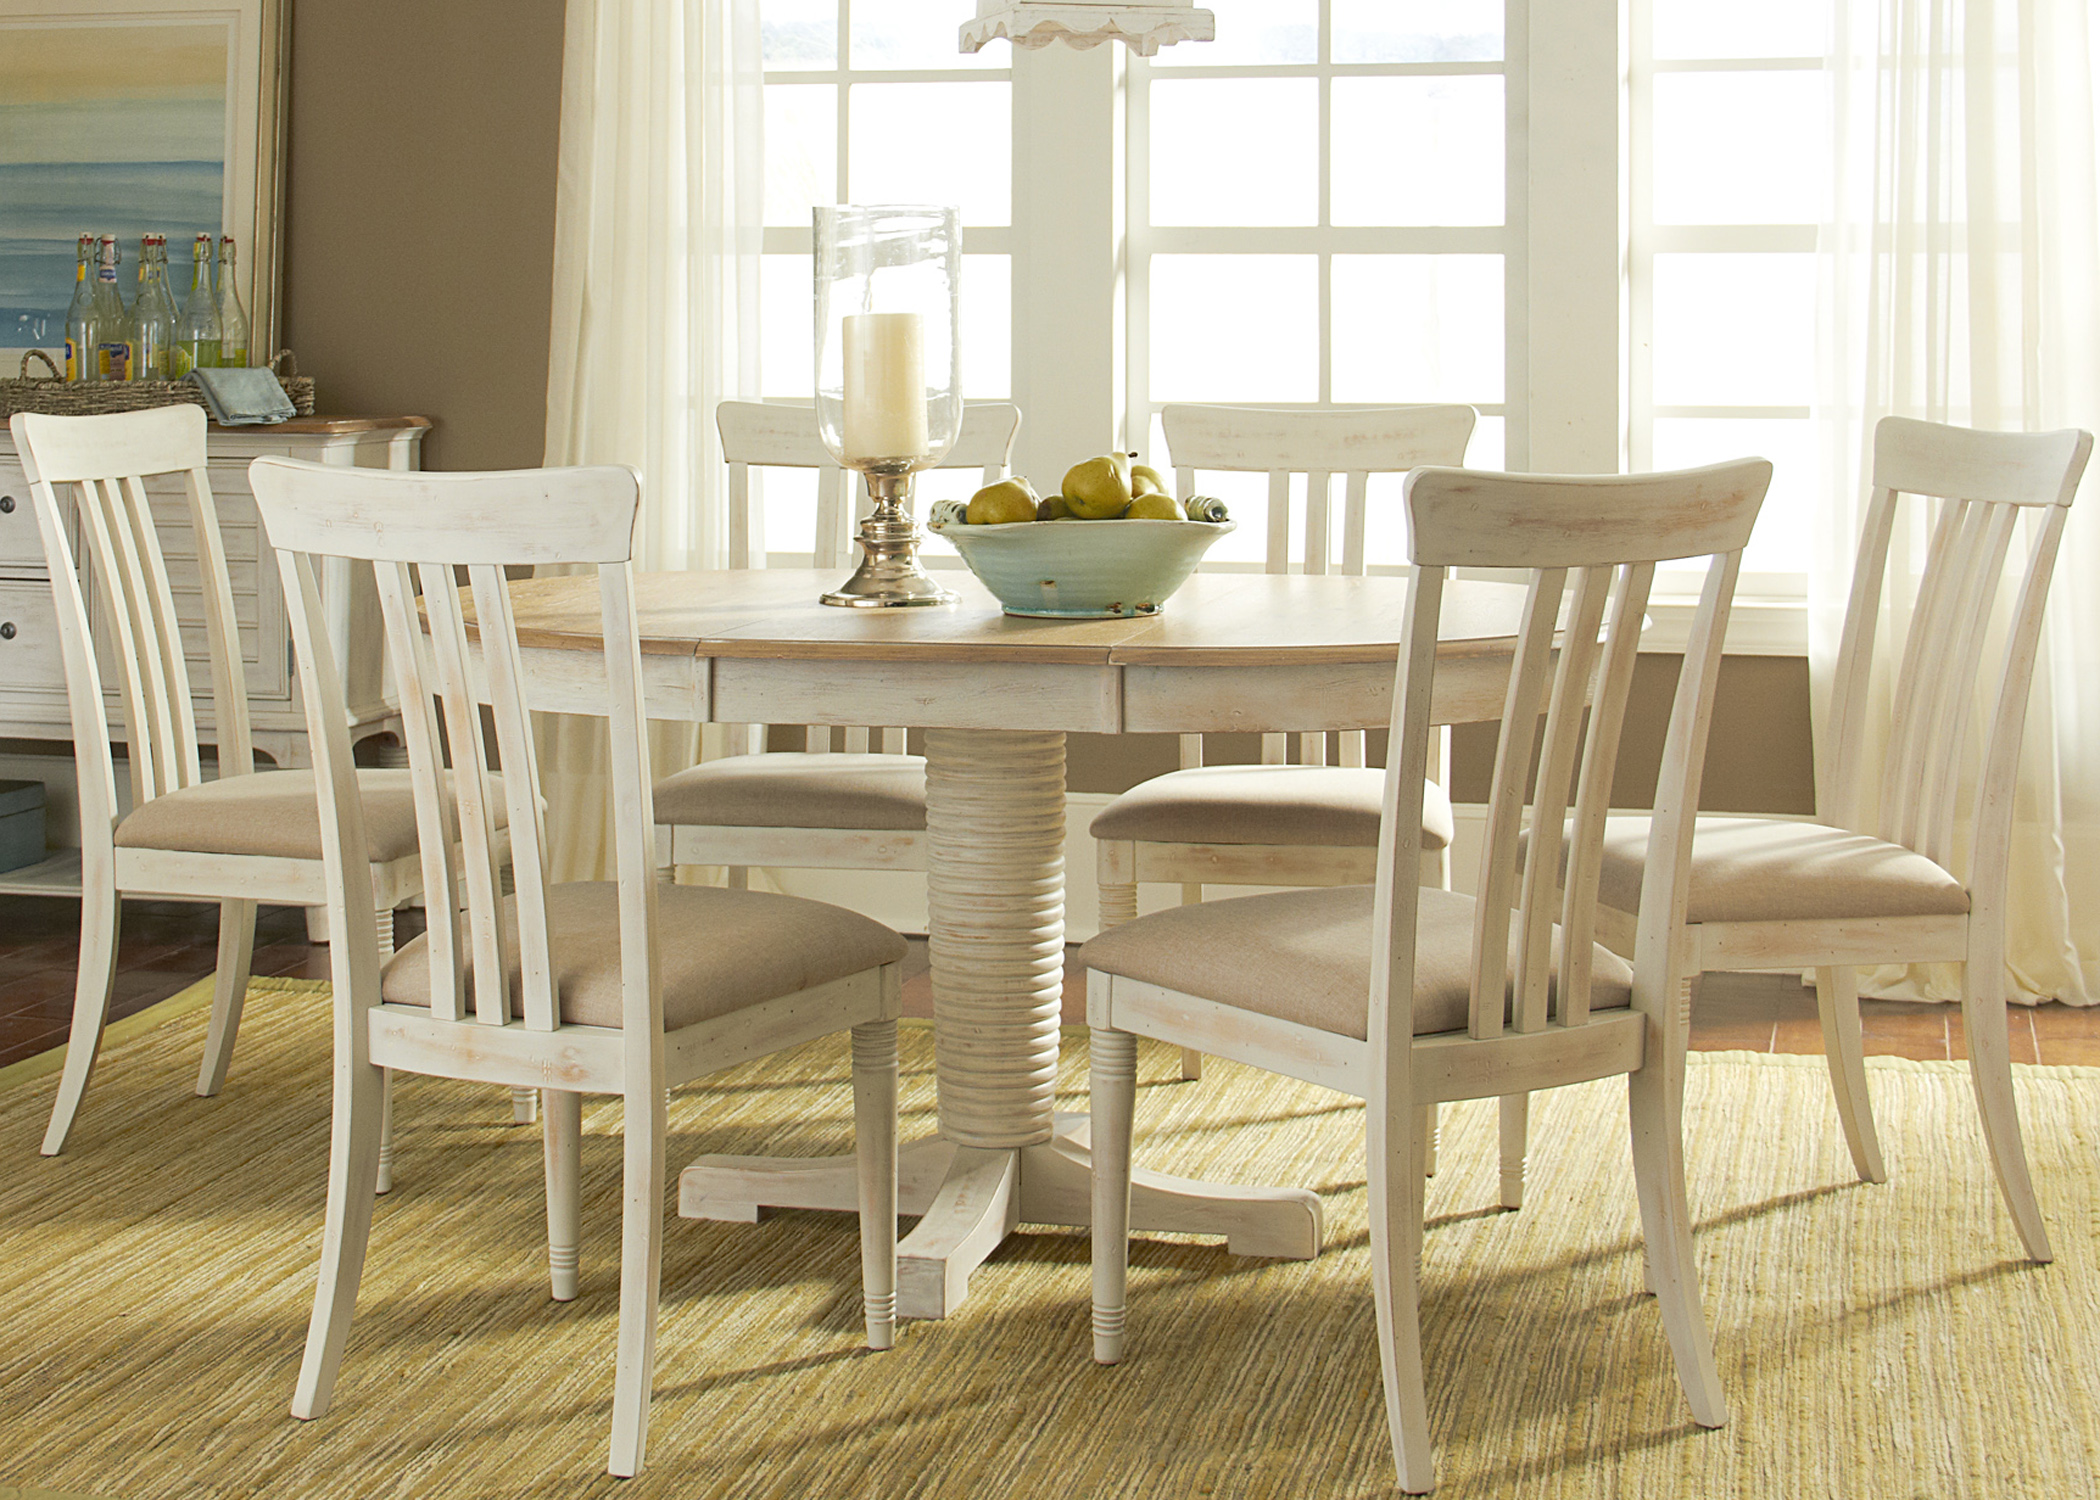 Liberty Furniture Point West 7 Piece Oval Table Set  - Item Number: 568-CD-7OVS